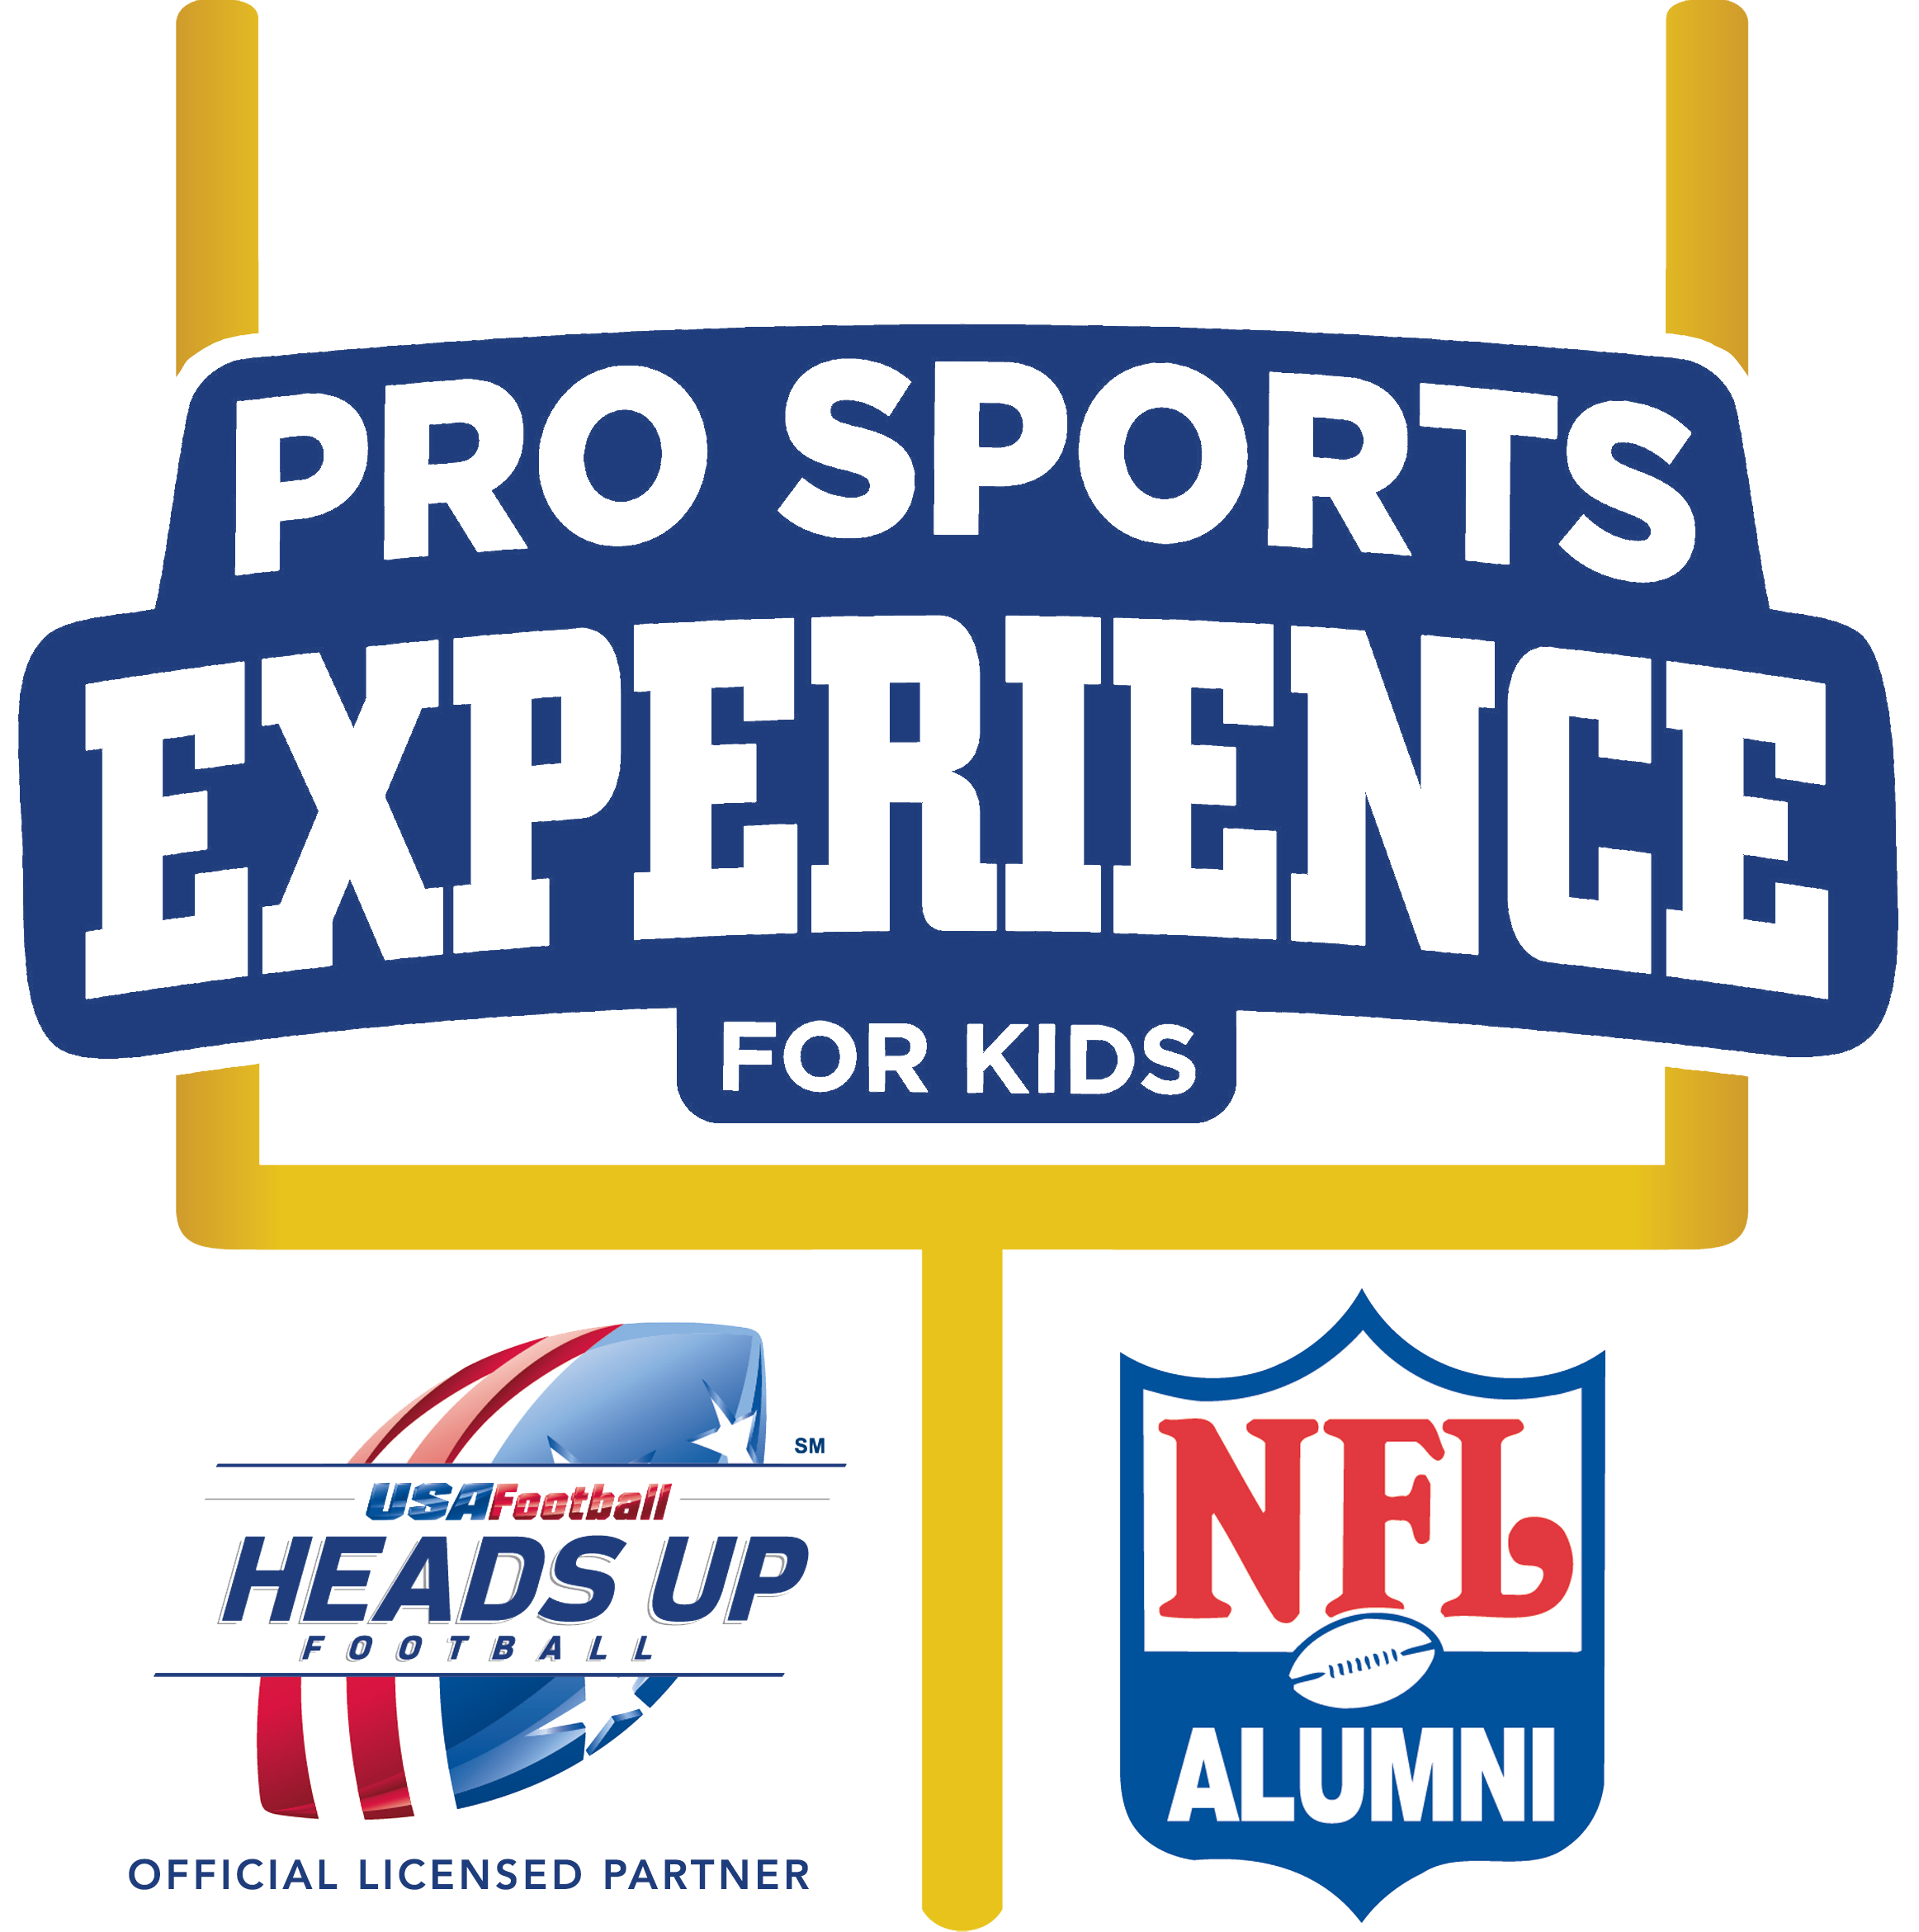 Pro Sports Experience